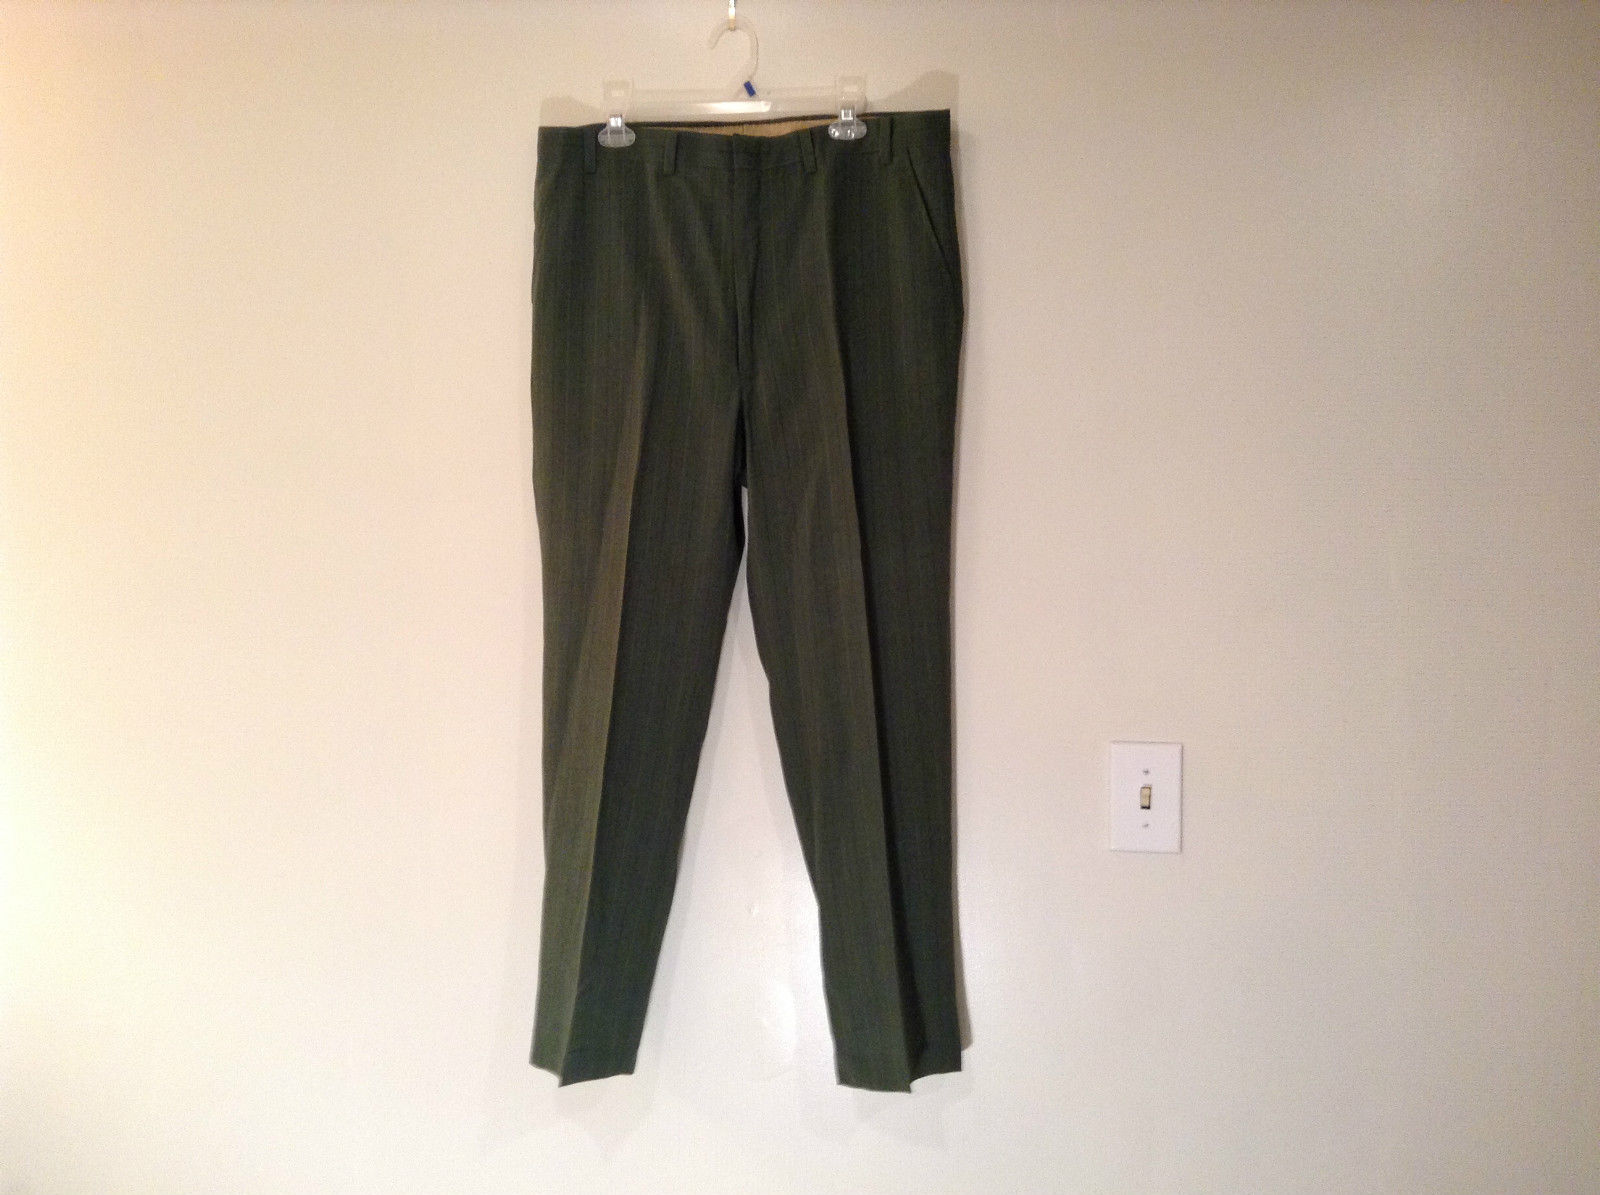 Talon Pleated Front Dark Green Unlined Dress Pants Excellent Condition No Tag